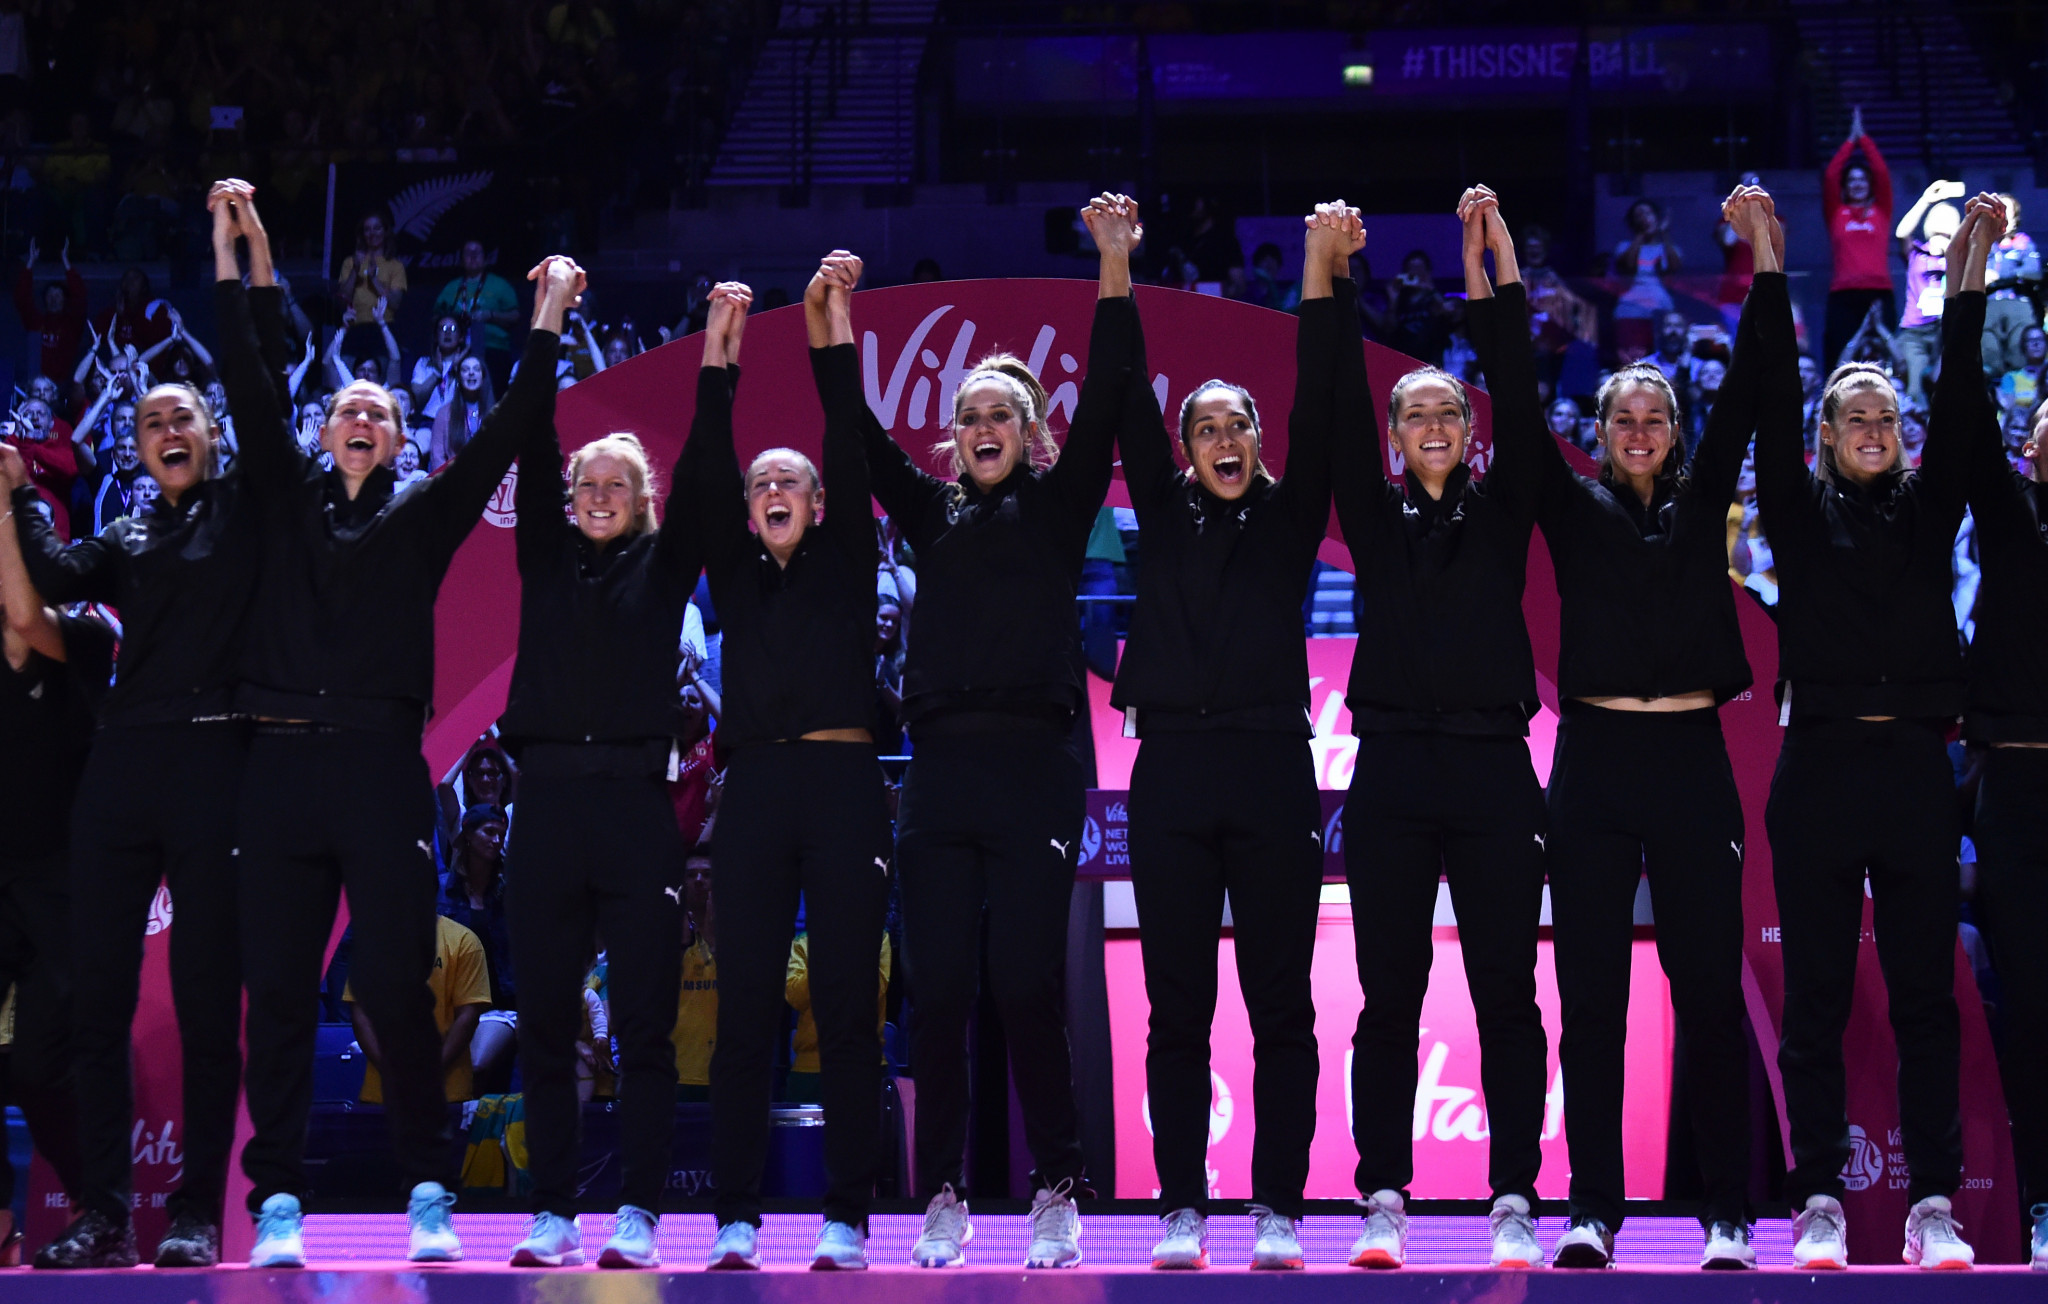 New Zealand triumphed at this year's Netball World Cup ©Getty Images